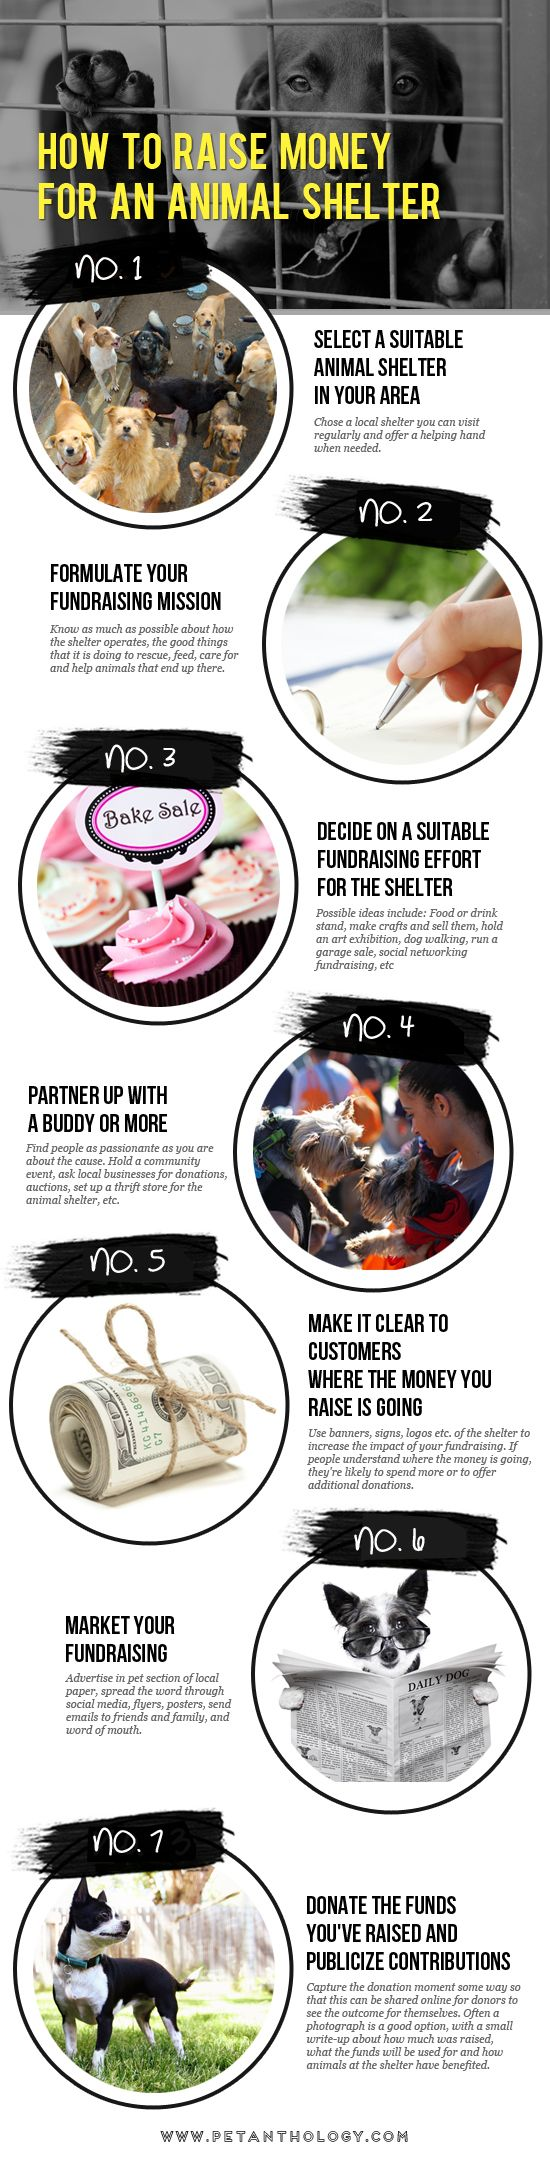 How To Raise Money for An Animal Shelter http://petanthology.com/infographic-how-to-raise-money-for-an-animal-shelter-or-rescue/ #pet #infographics #animalshelter #fundraising